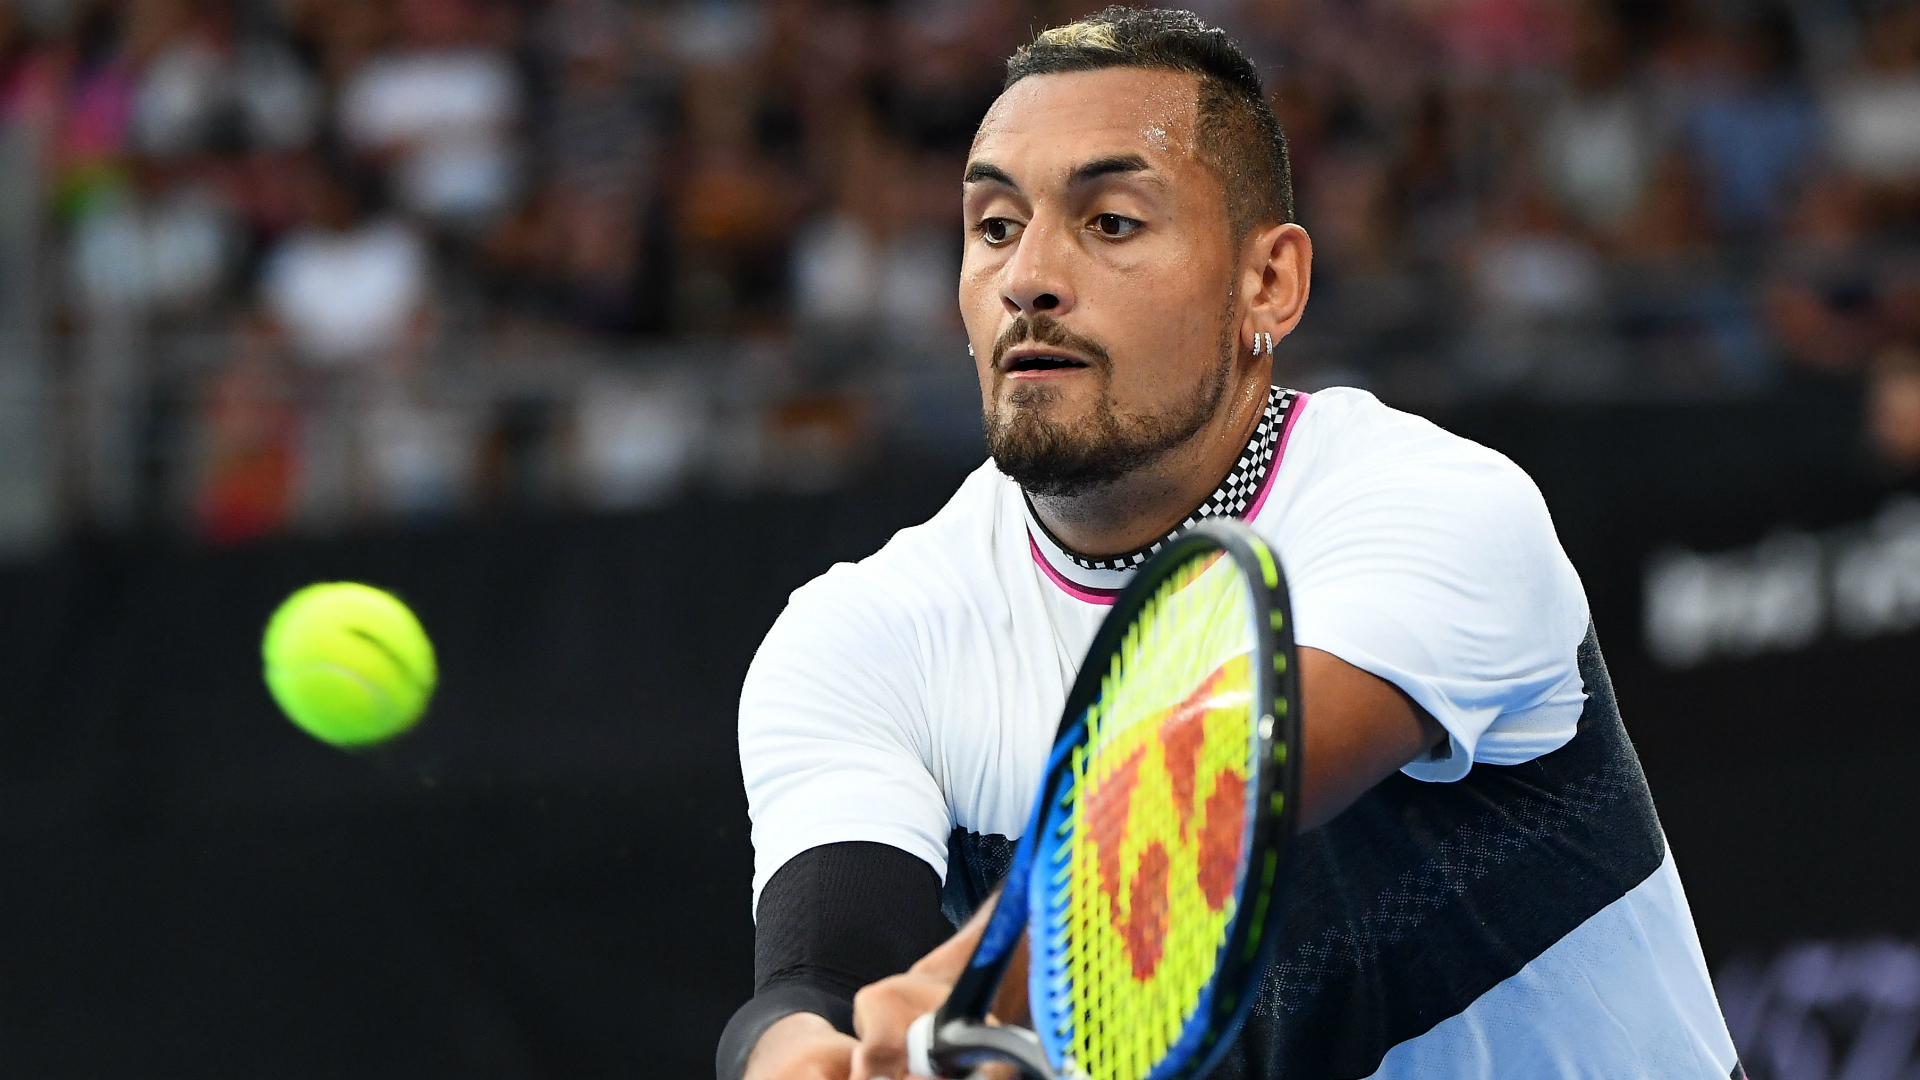 Kyrgios edges 'good mate' Millman at Delray Beach Open